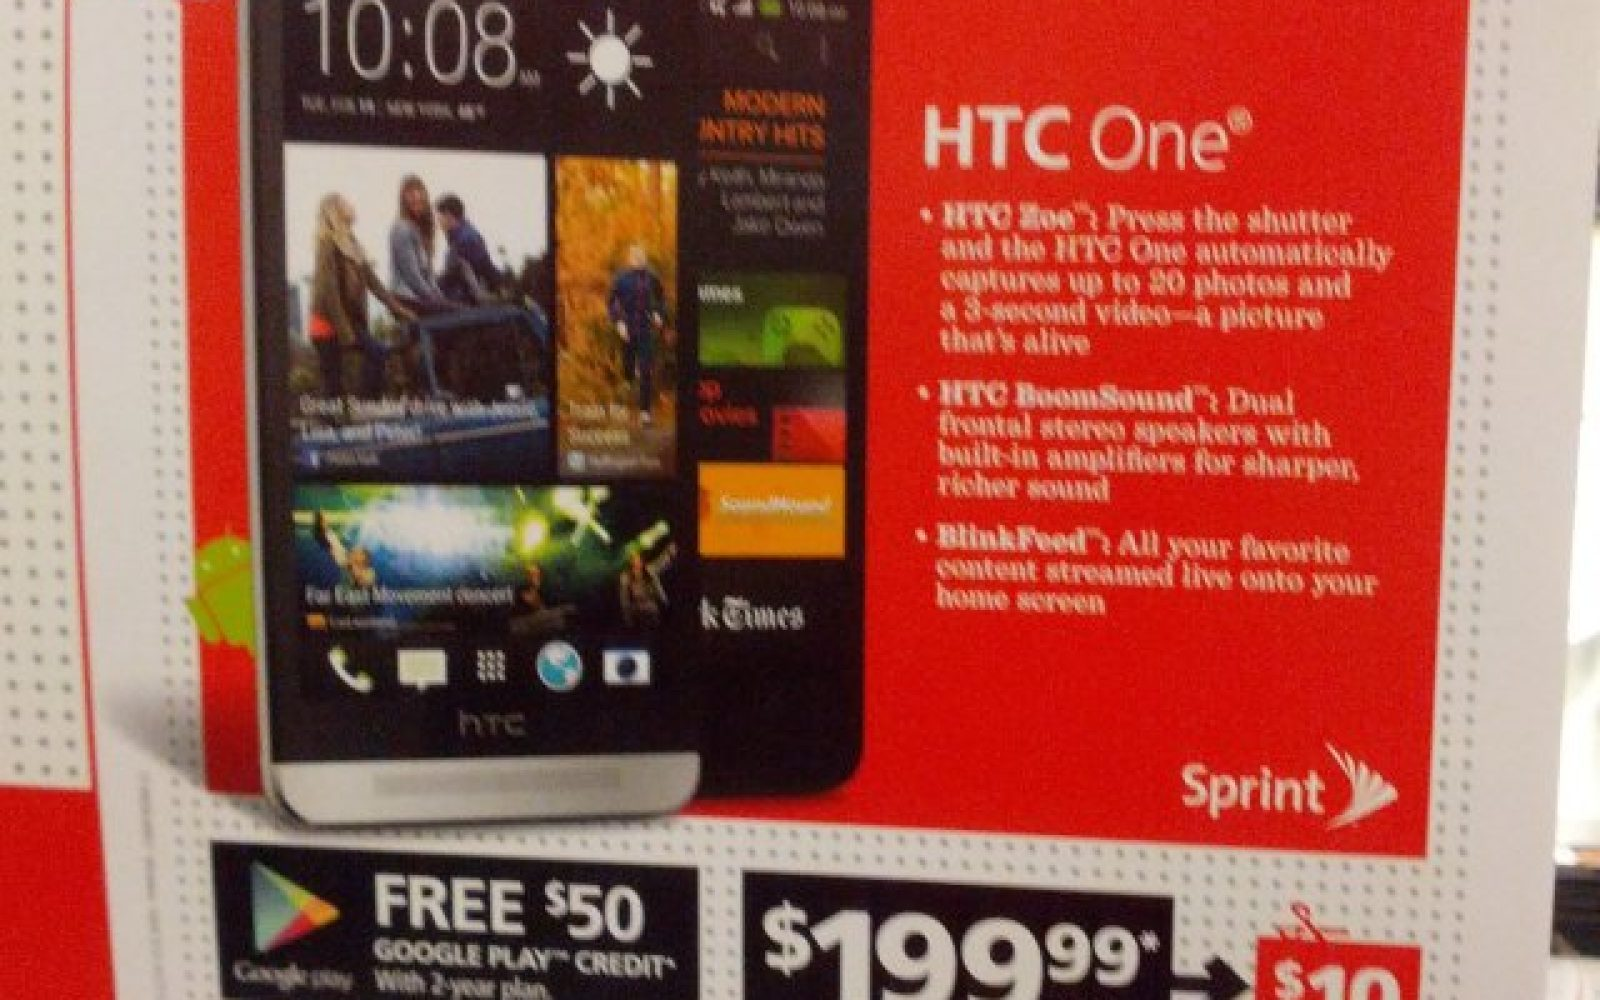 RadioShack to offer Sprint HTC One for $199 99+$50 Google Play gift